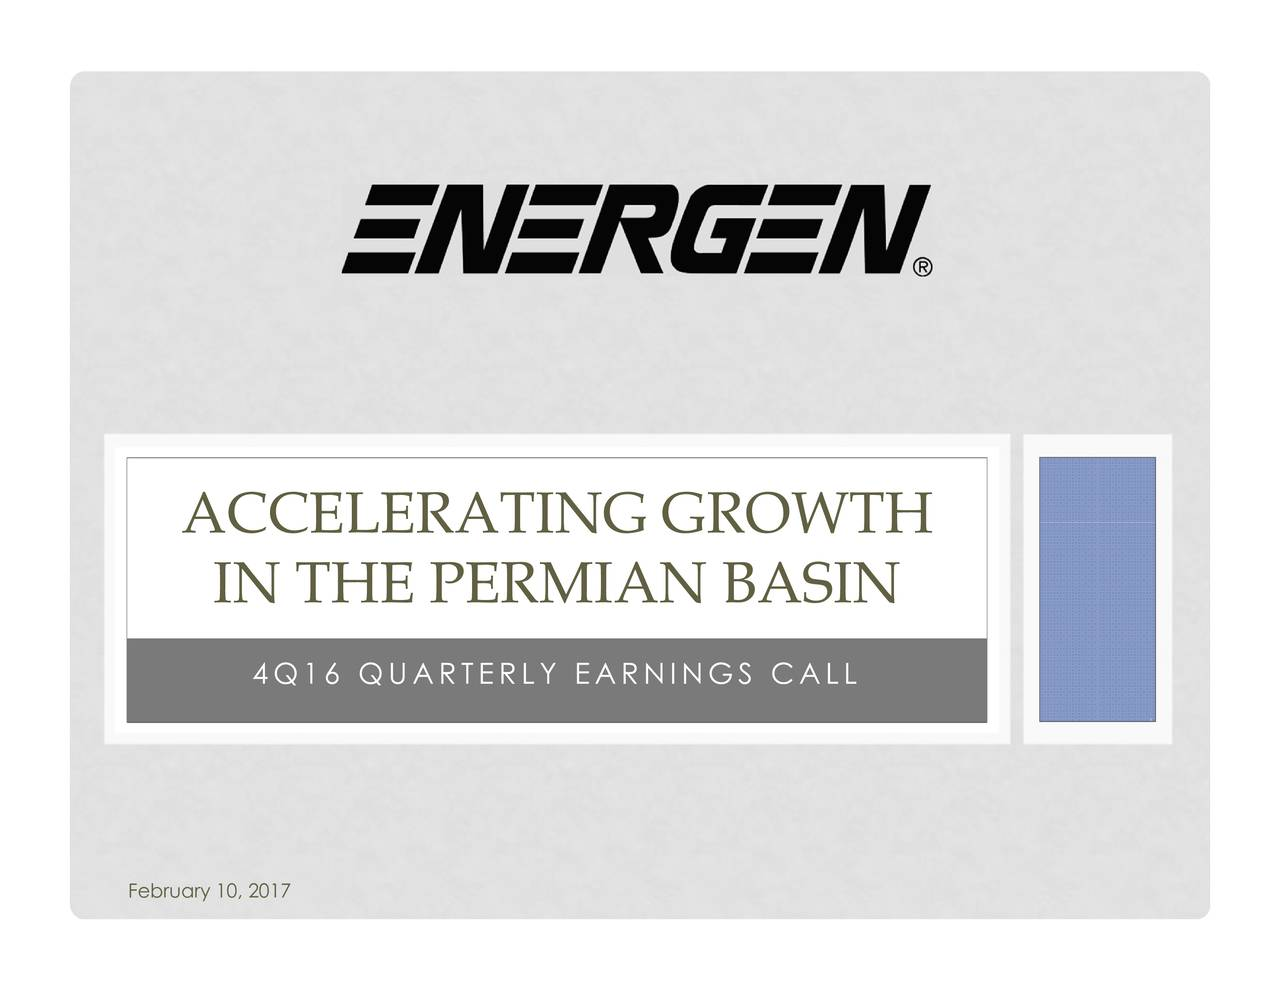 IN THE PERMIAN BASIN ACCELERATING GROWTH February 10, 2017